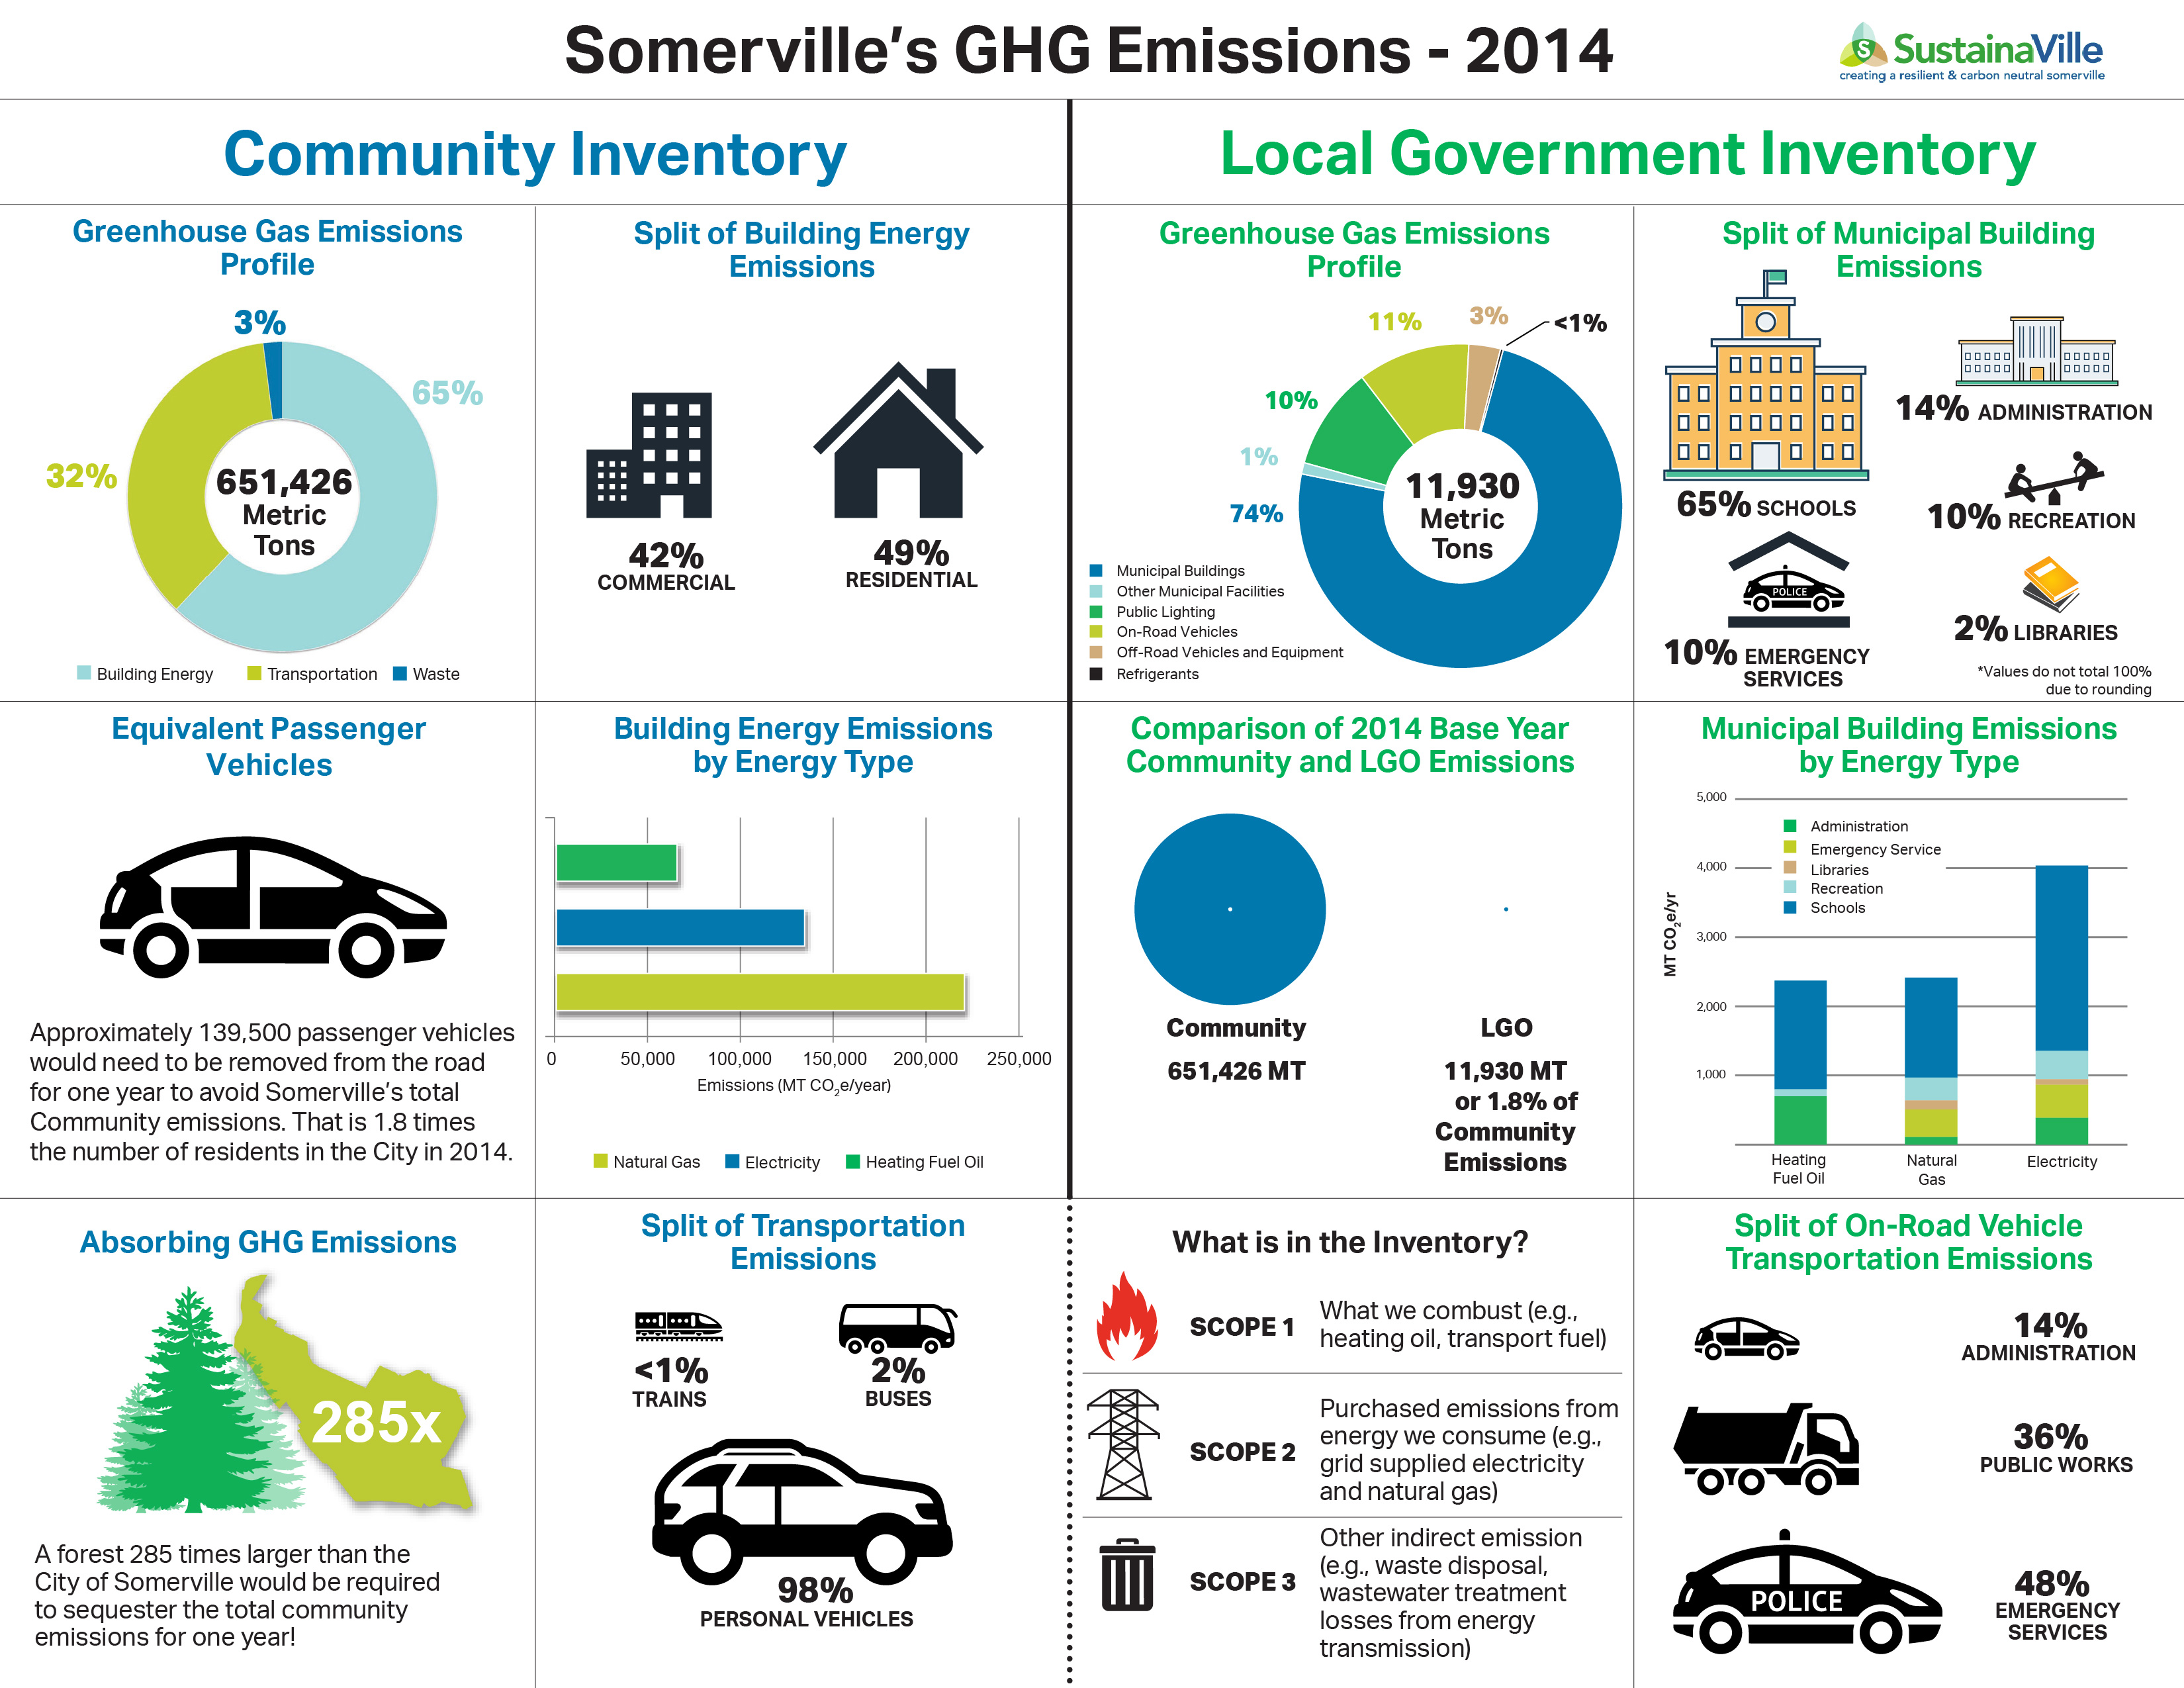 Somerville produces 609,565 metric tons of GHG per year.